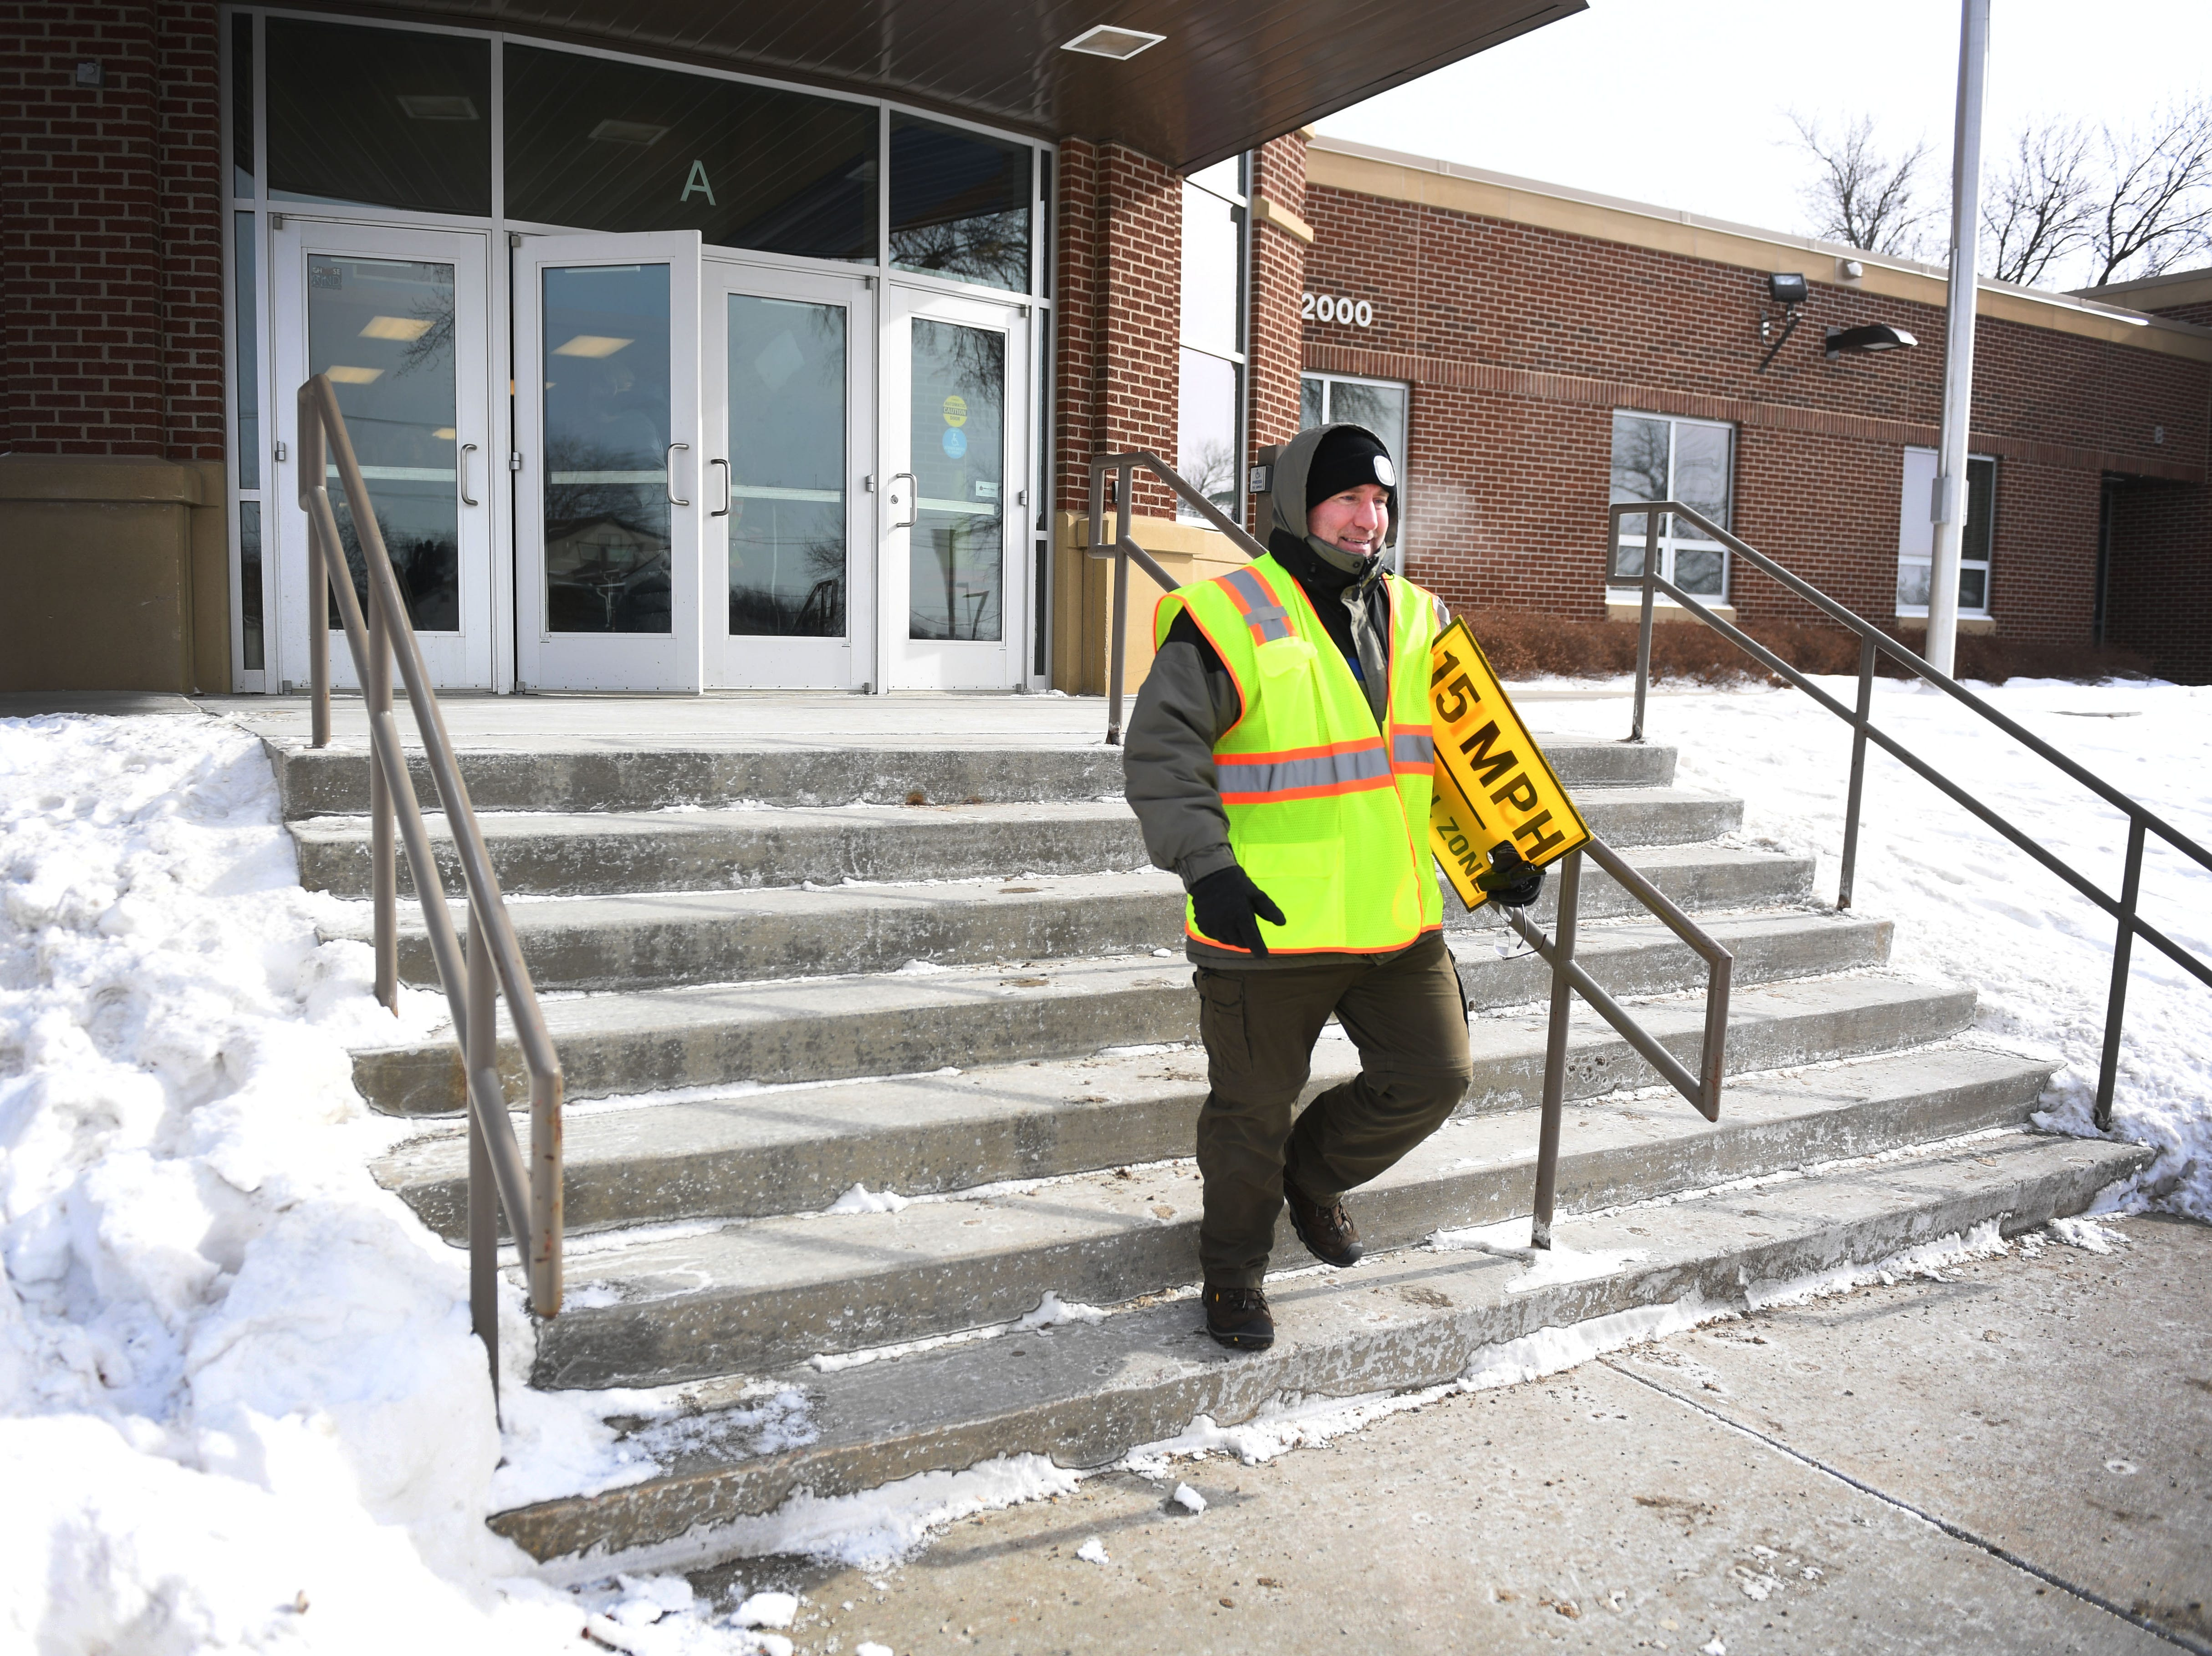 Terrin Haggerty, counselor at Susan B. Anthony Elementary School, is on crosswalk duty for early dismissal Tuesday, Jan. 29, in Sioux Falls. Area schools had early dismissal Tuesday because of severe weather.